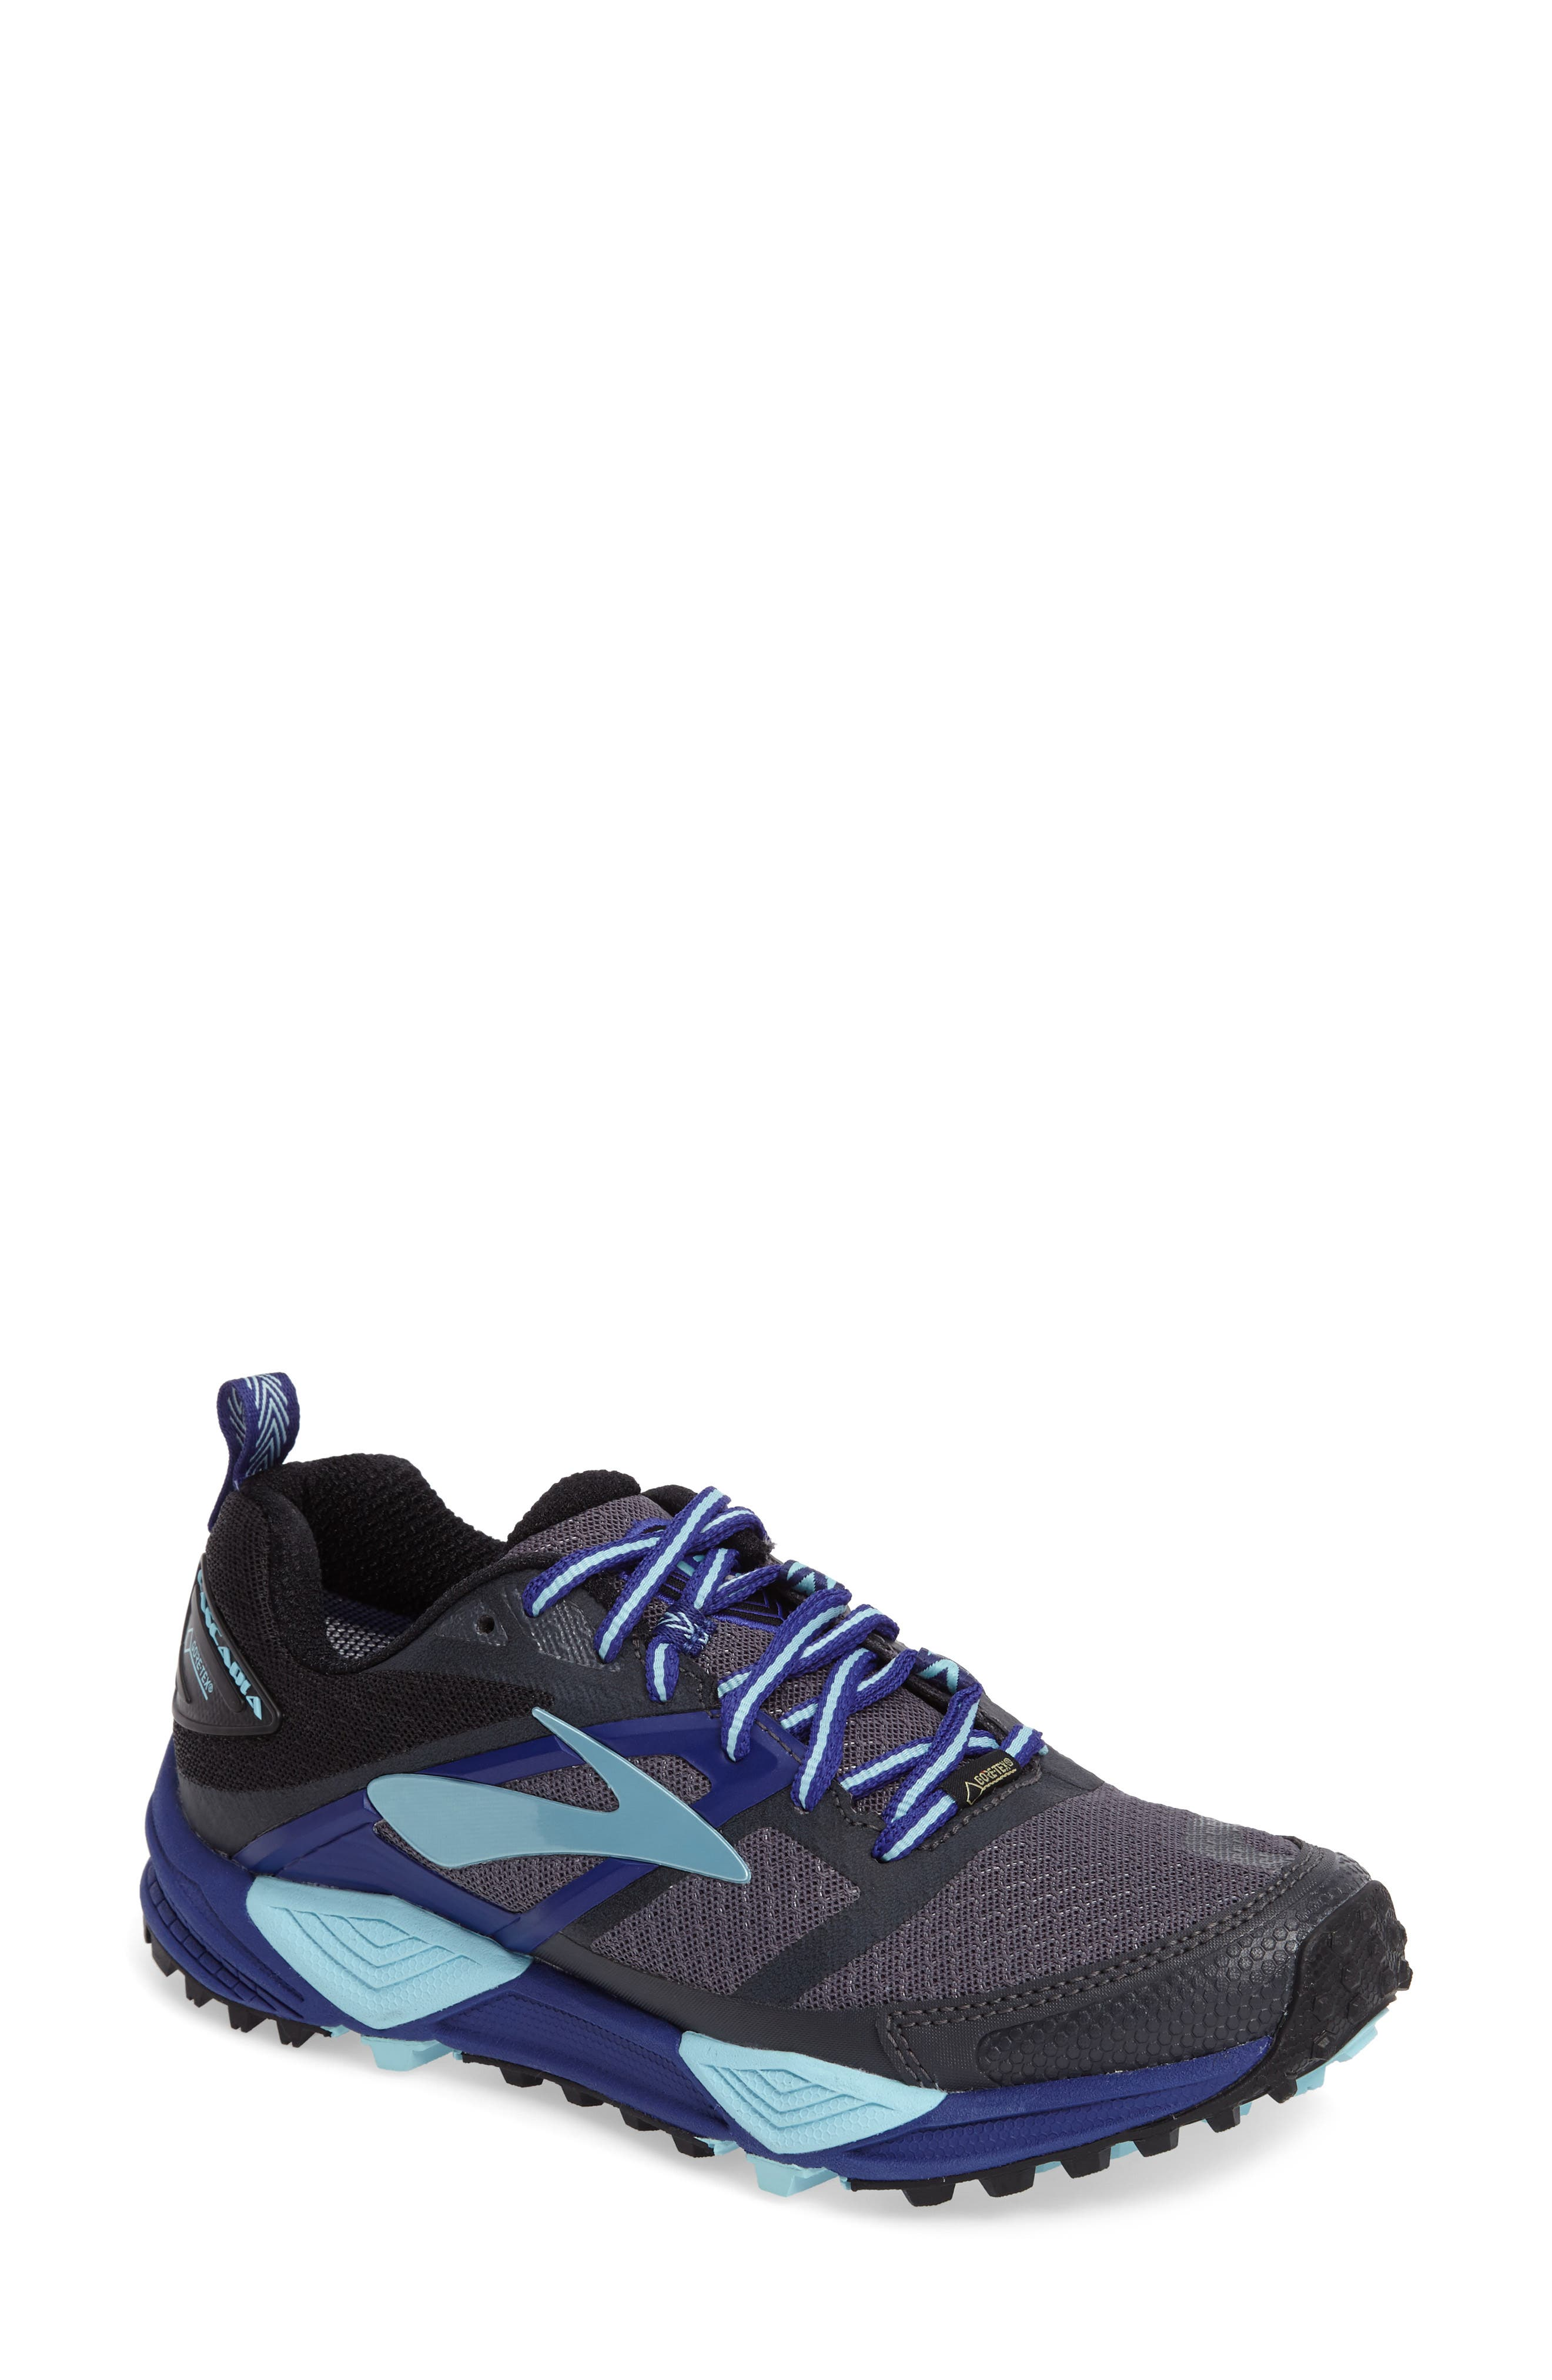 Cascadia 12 GTX Trail Running Shoe,                         Main,                         color, 001